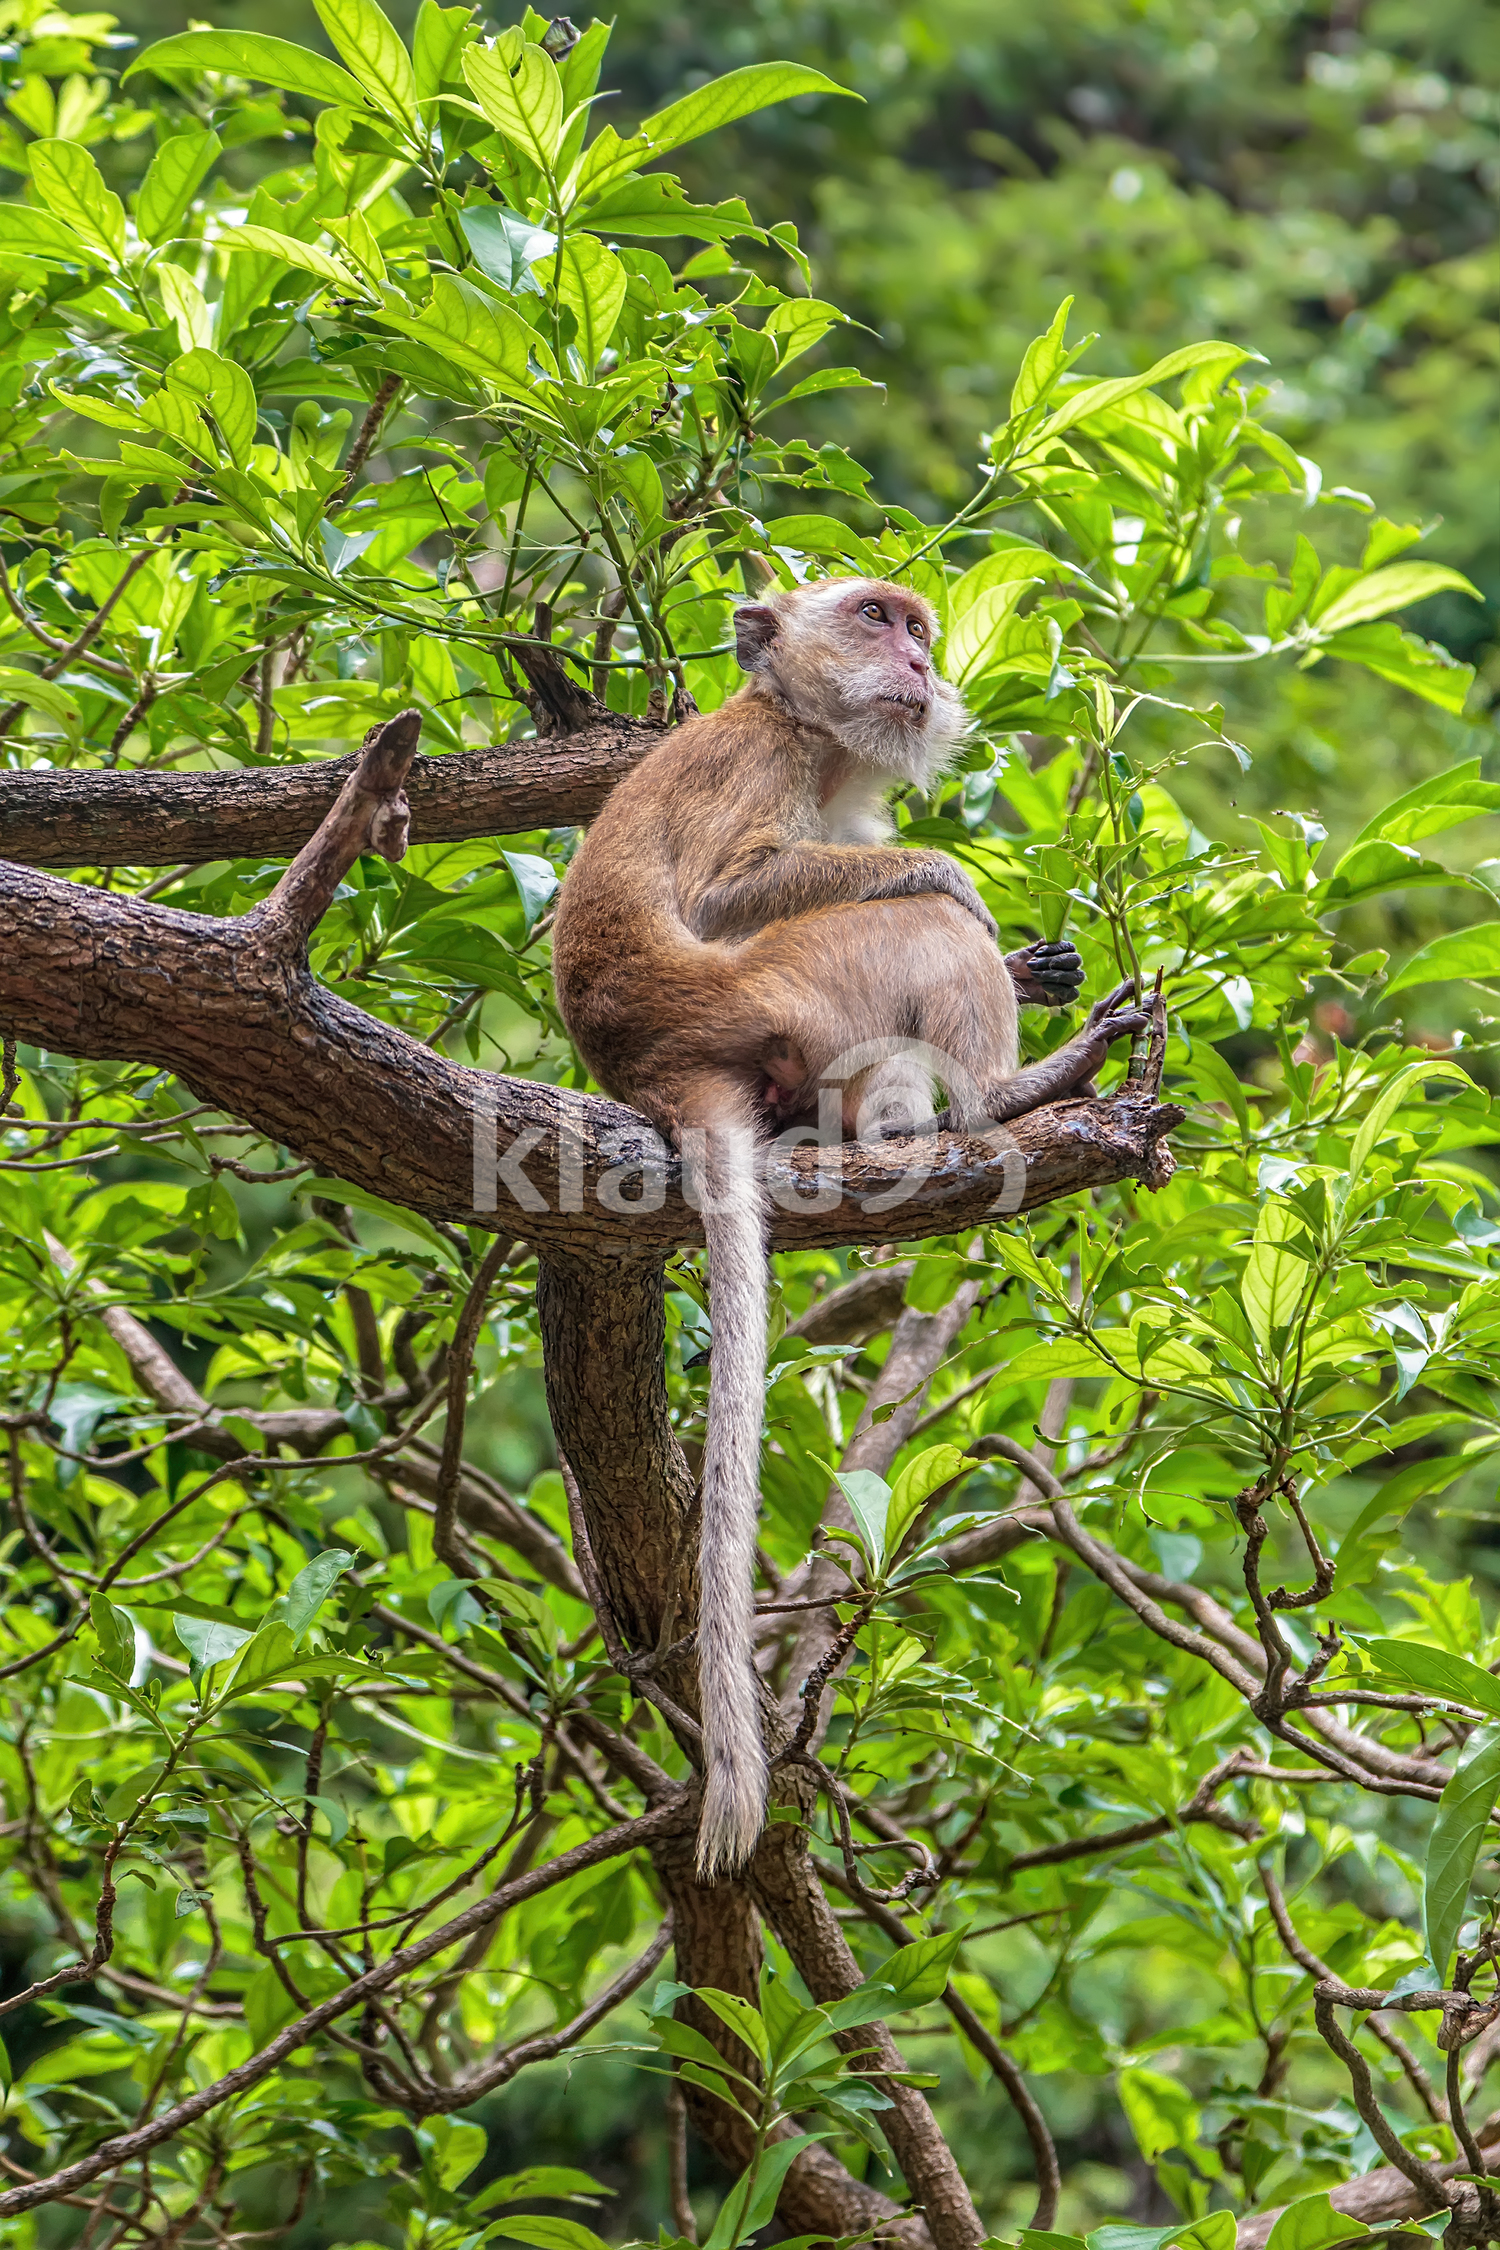 The monkey sits on a tree branch. Kingdom of Thailand